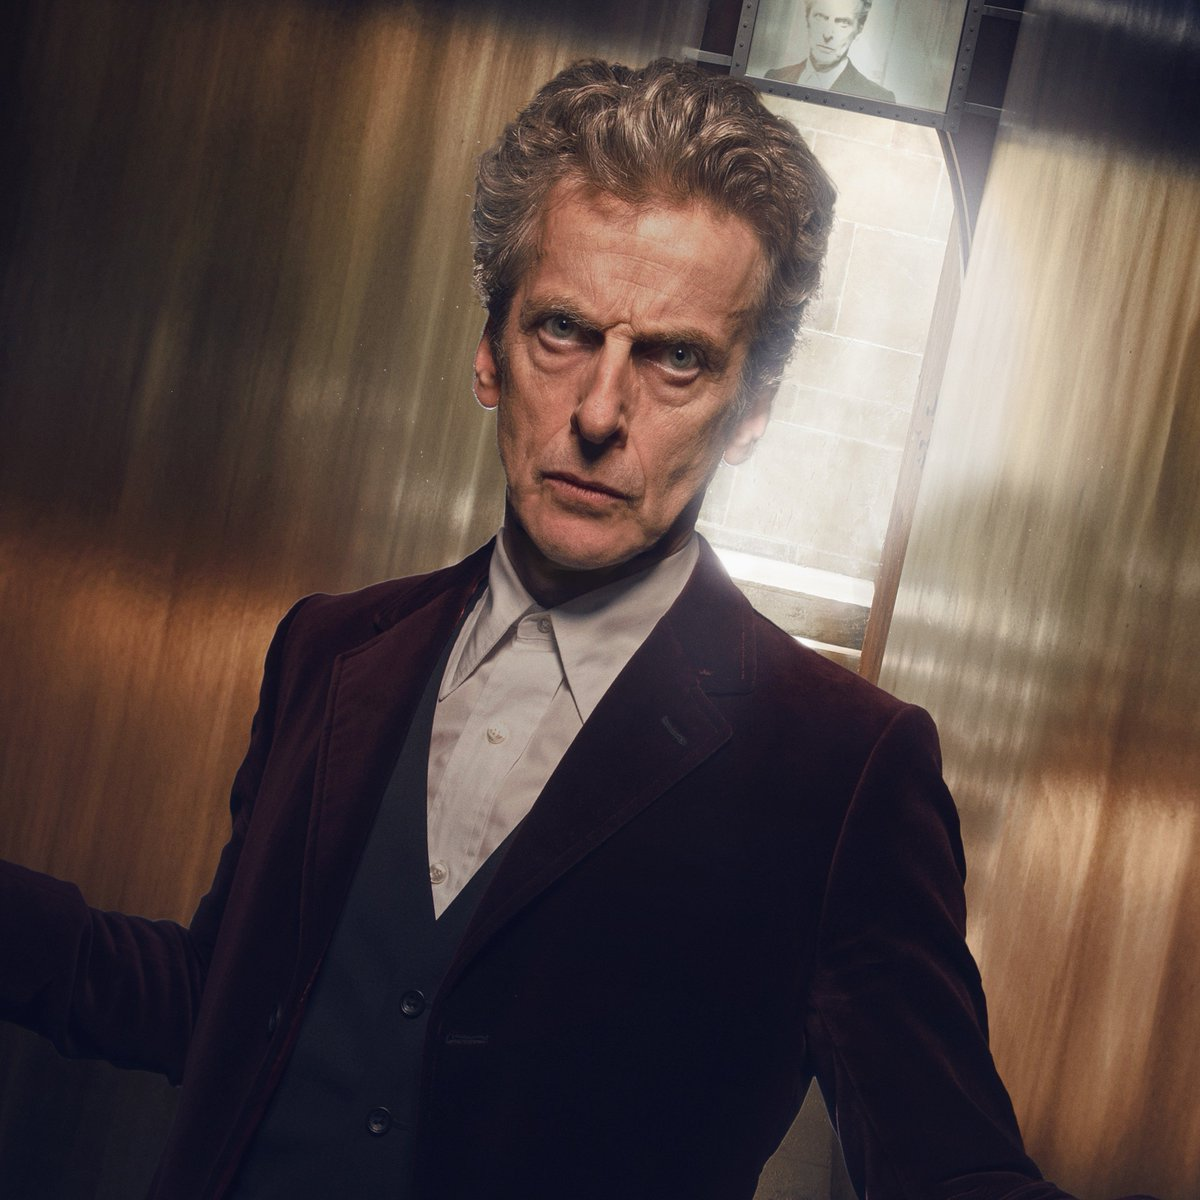 Doctor Who Official on Twitter: